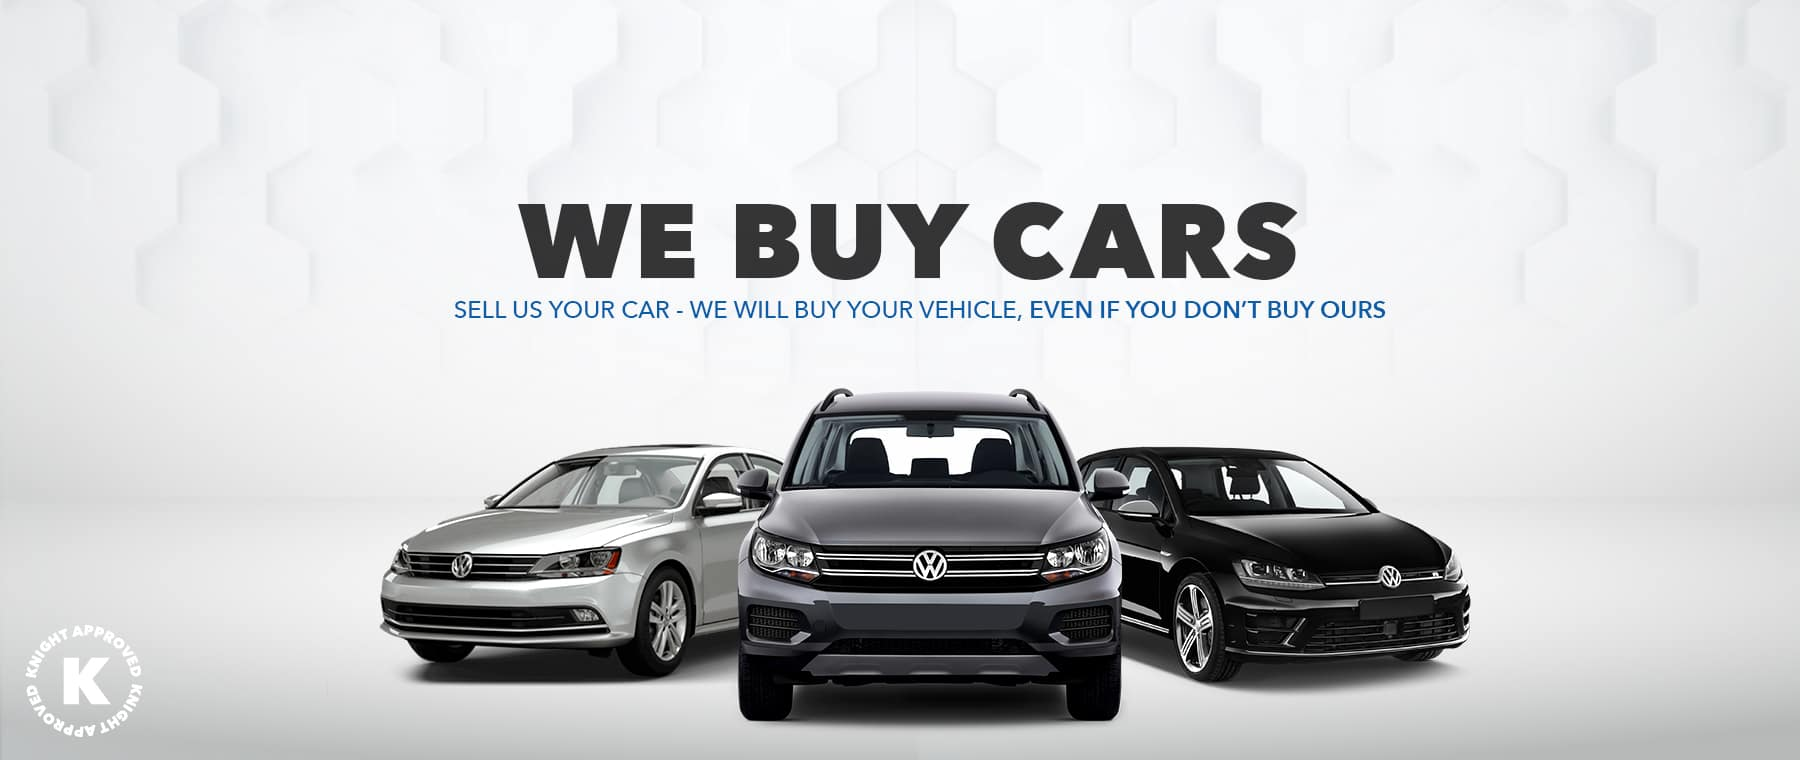 New and Pre-Owned Volkswagen Winnipeg, MB | Knight Auto Haus VW